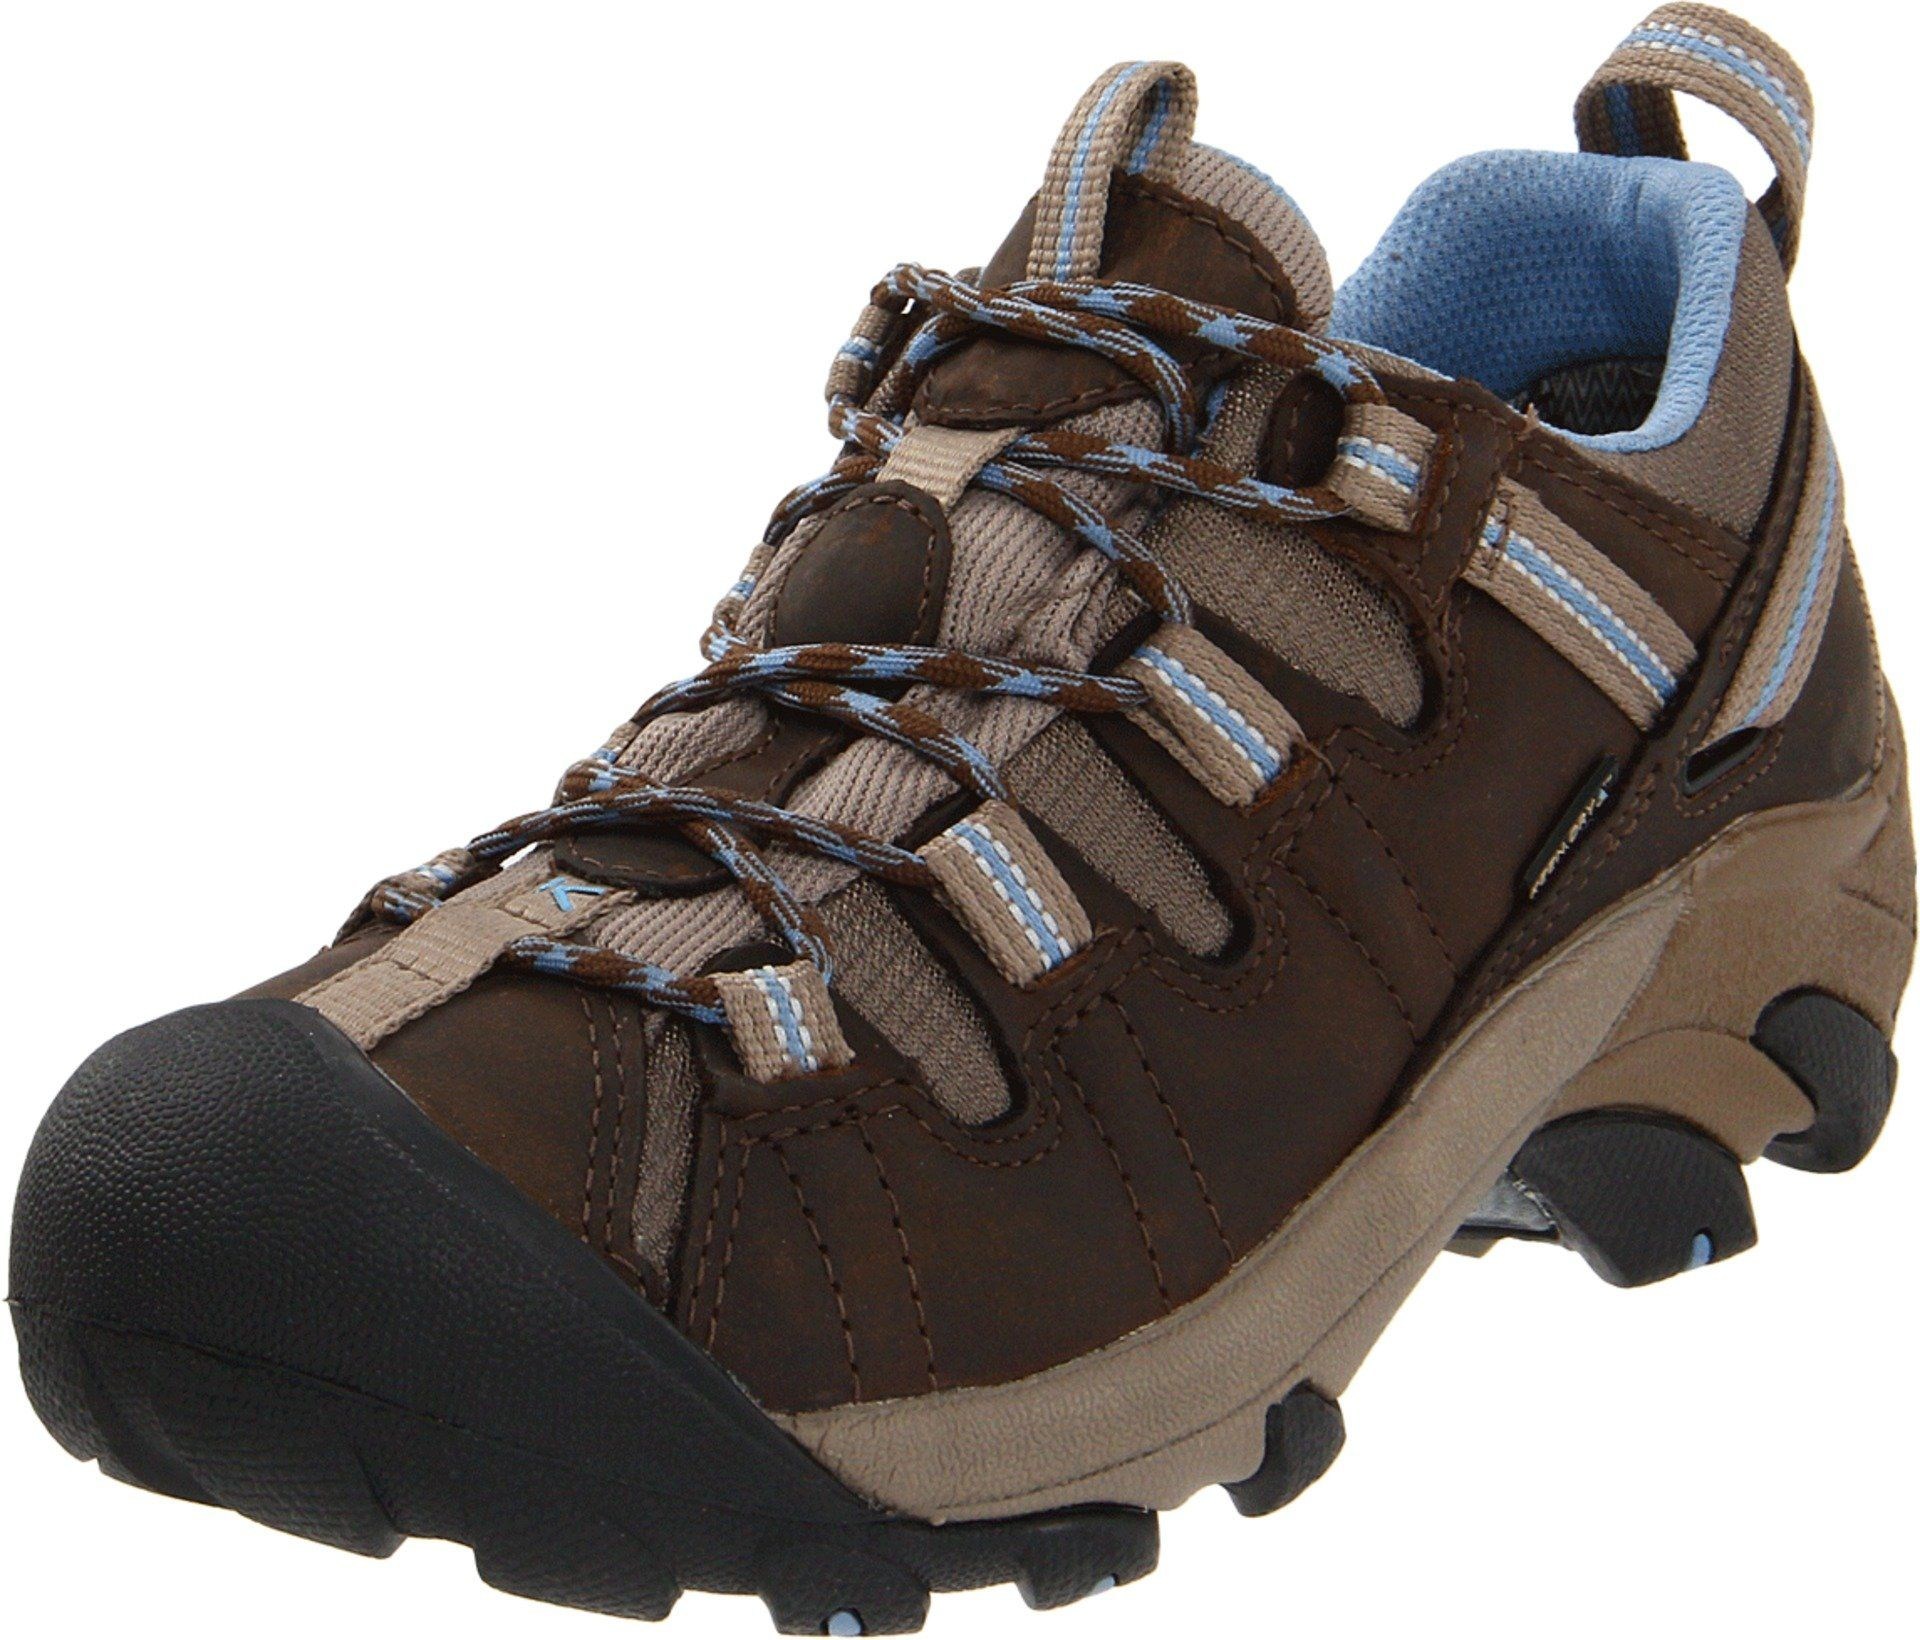 0d7ca6f7179d KEEN Women s Targhee II Waterproof Hiking Shoe